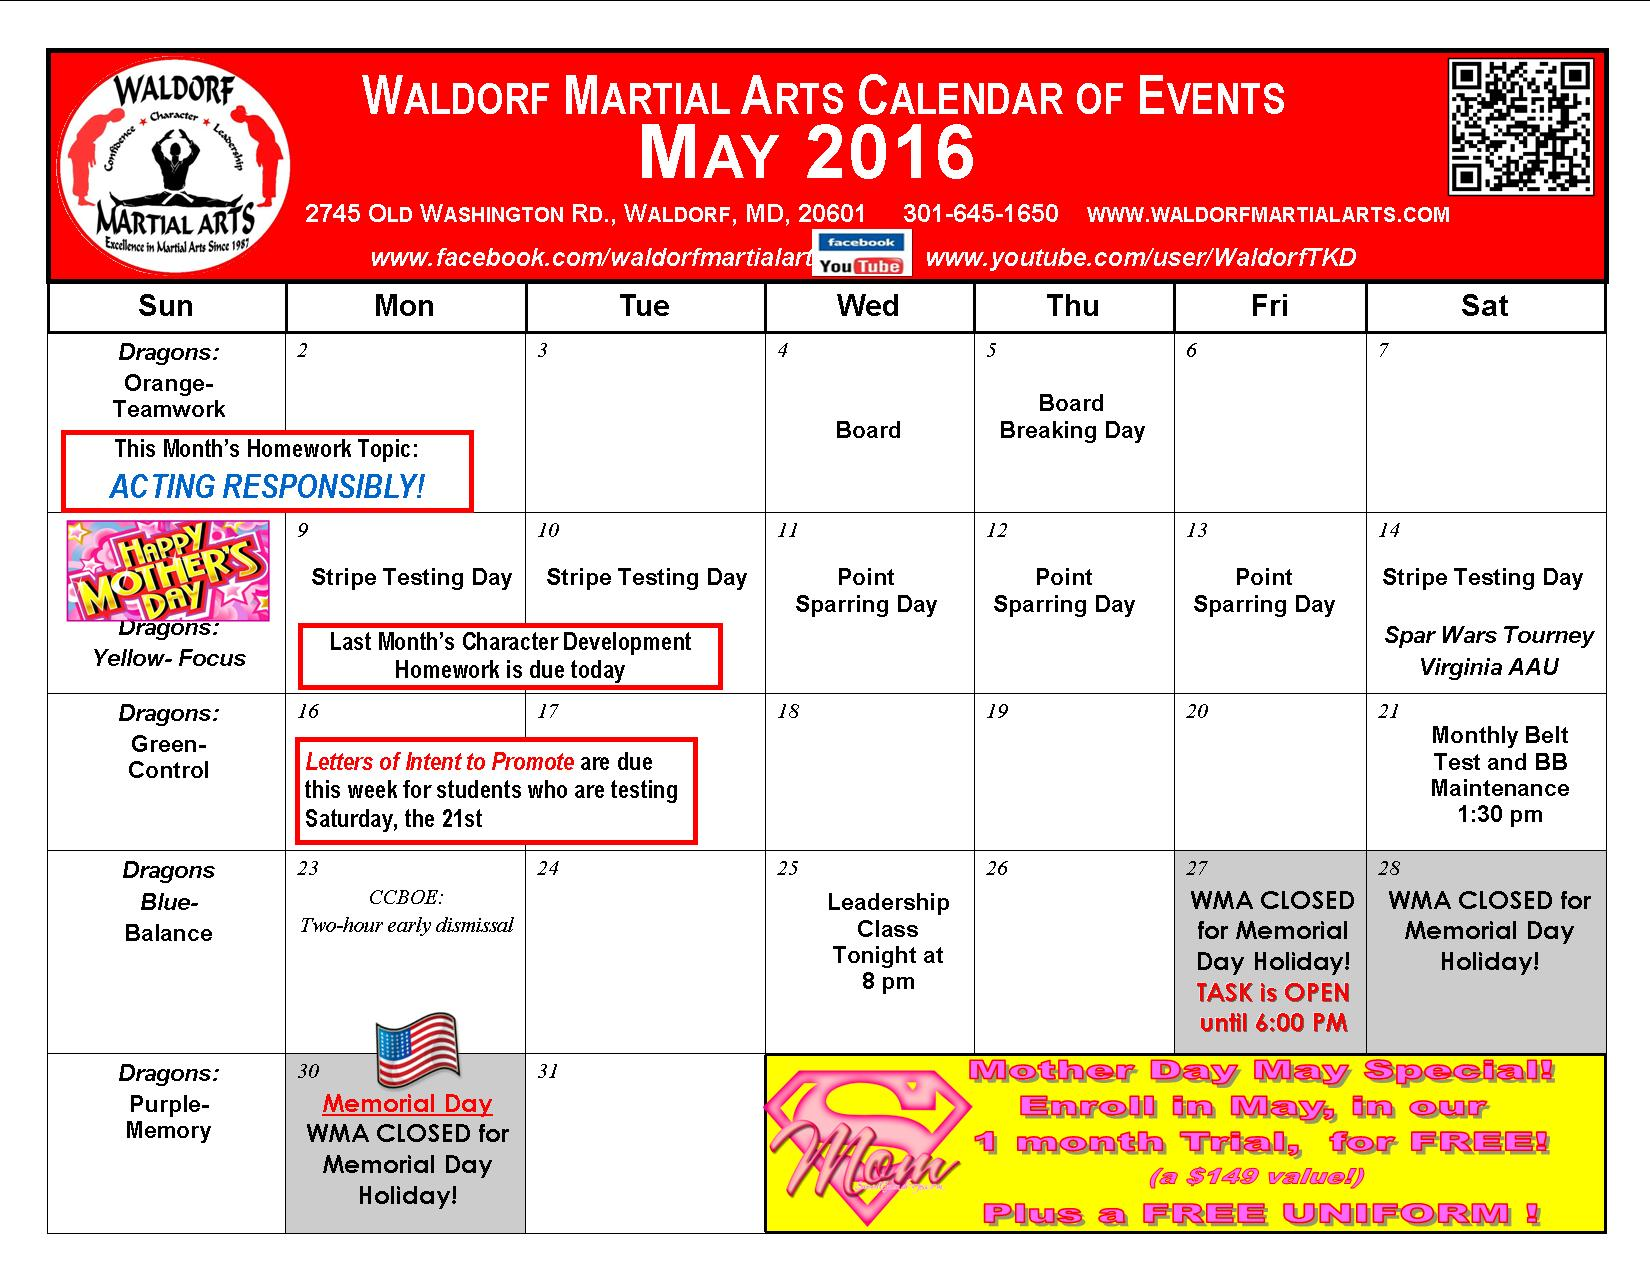 May 2016 Calendar of Events